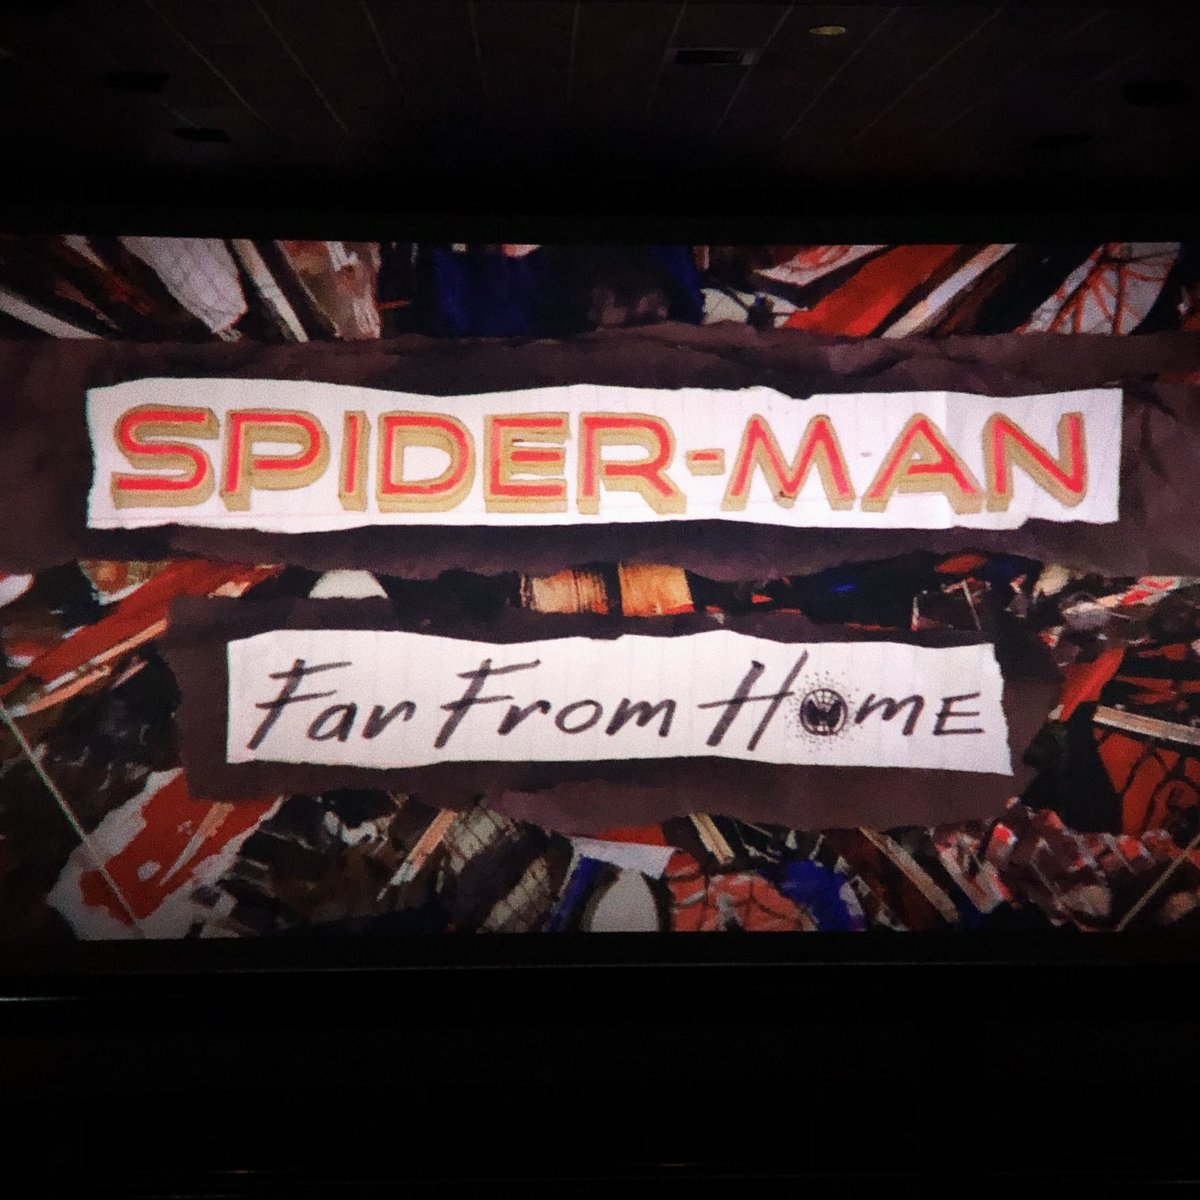 the feeling of watching ffh in cinemas for the first time... yeah i would give anything to experience that again https://t.co/sRtWUaxqSk